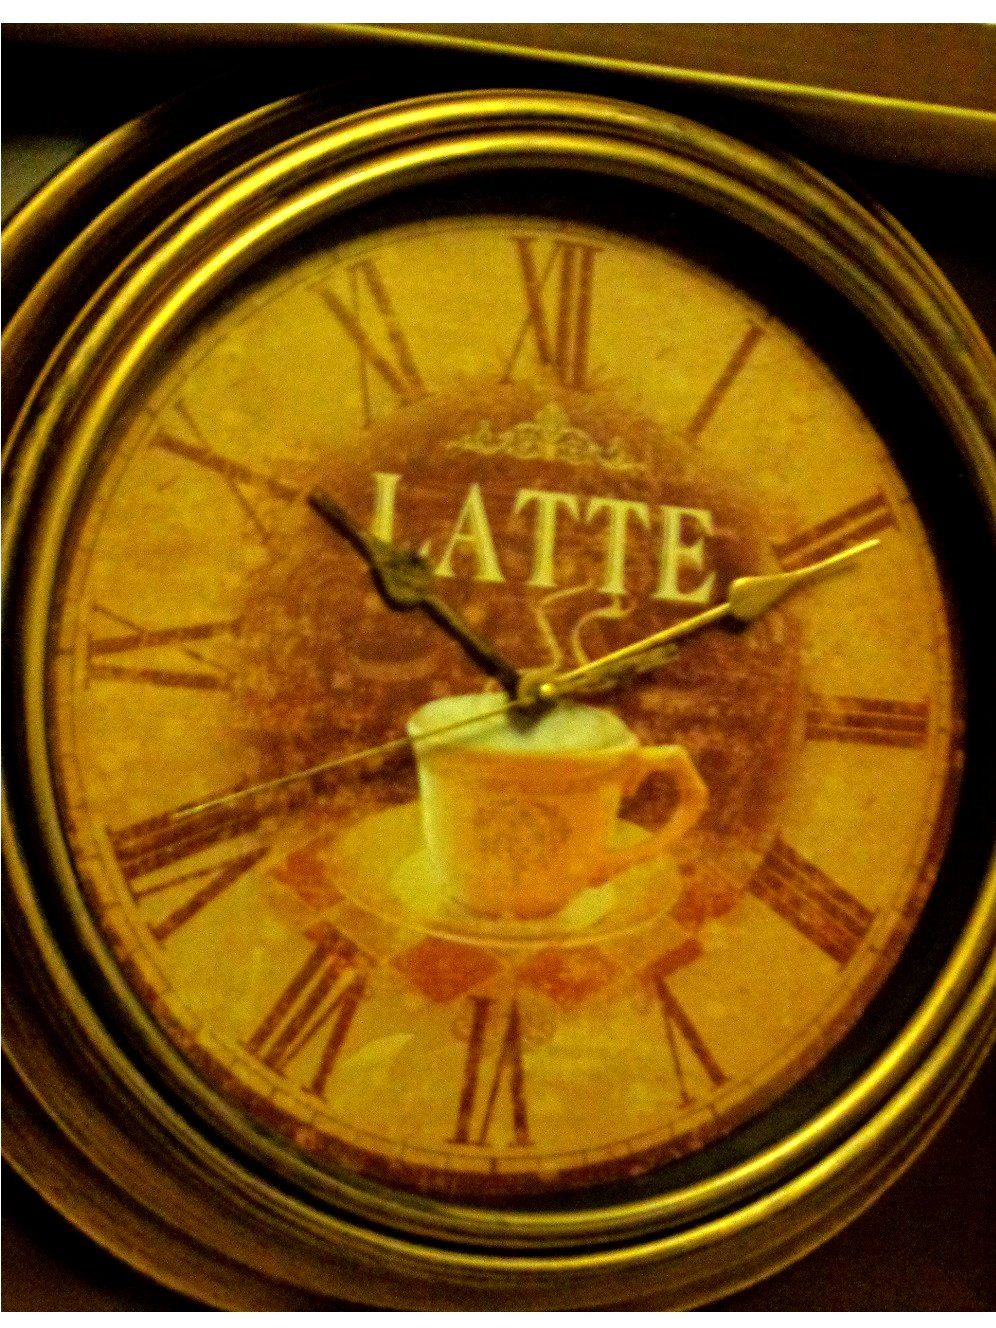 Coffee Themed Wall Clocks Image collections - home design wall stickers